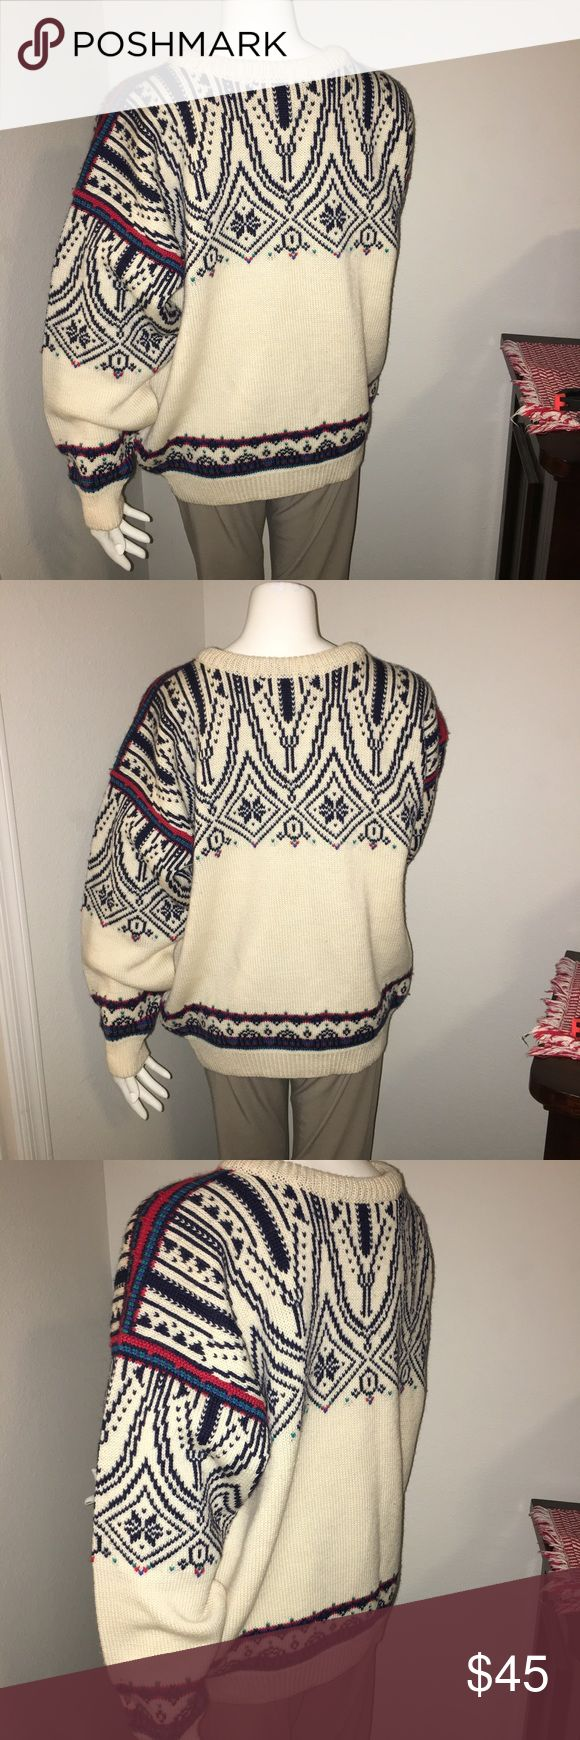 "Mens vintage LS wool sweater skandia of veil sz: L Thank you for viewing my listing, for sale is a men's, vintage, 100% wool, light brown, blue, and red, longsleeve, sweater.  Item is in great condition with no rips or stains.  Brand: skandia of veil - dale of norway Sz: L  If you have any questions or would like additional photos please feel free to ask.  From under one arm to under the other measures appx 25"" from the top of the shoulder to the bottom of the sweater measures appx 28""…"